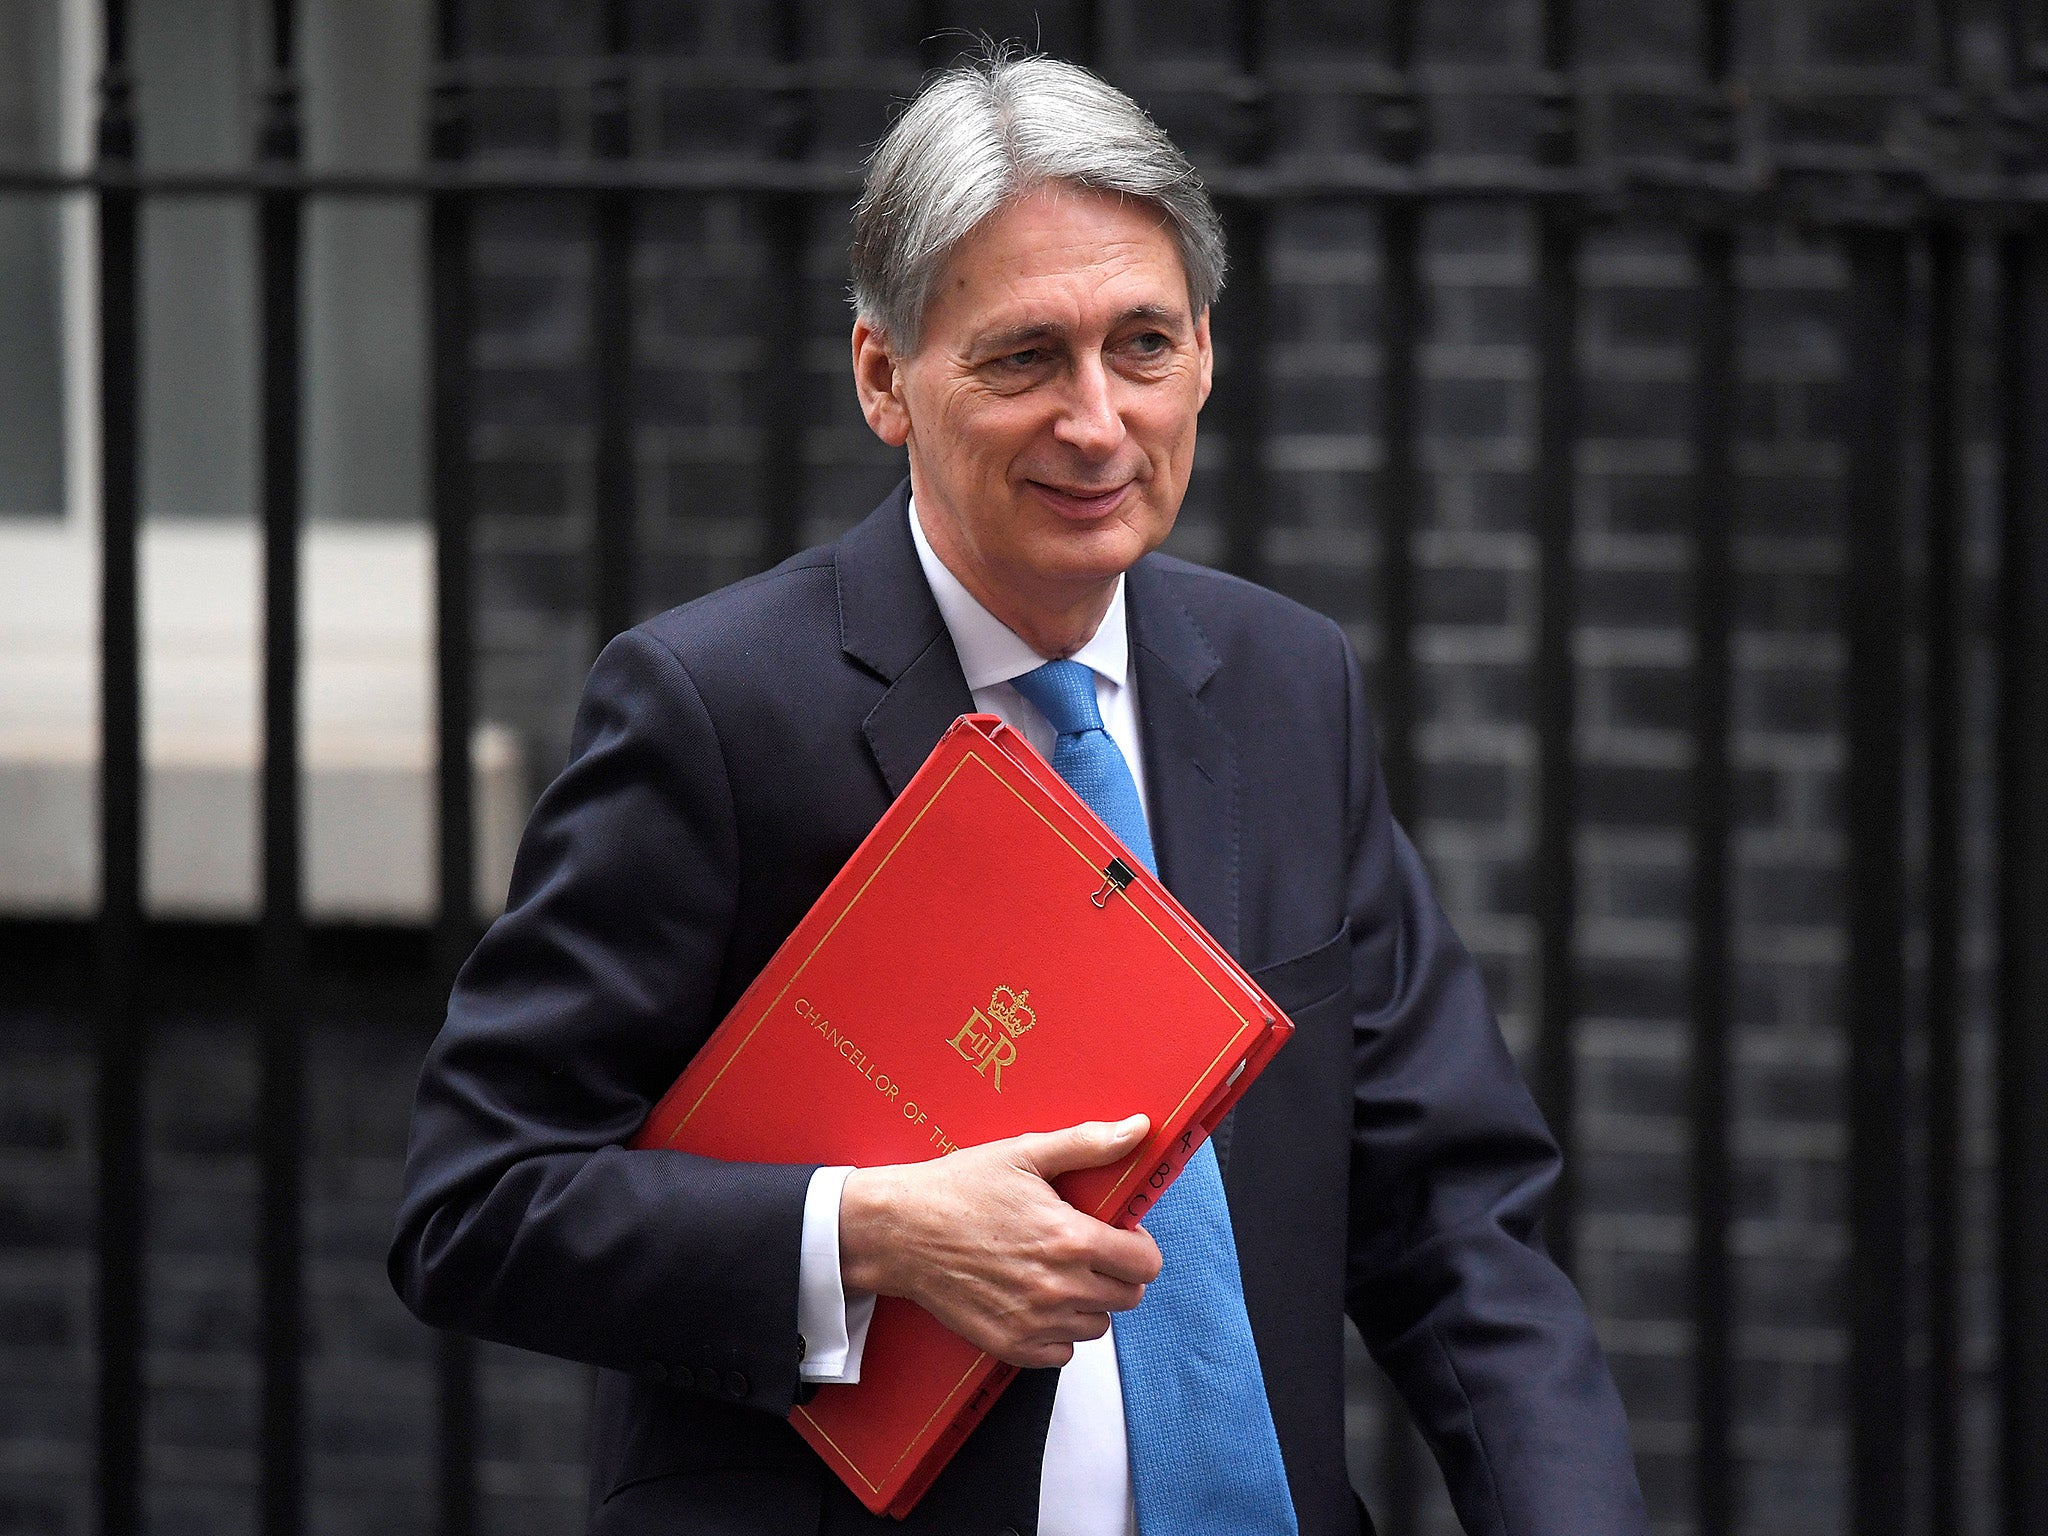 Philip Hammond says Government could continue with no-deal planning until Brexit transition period ends